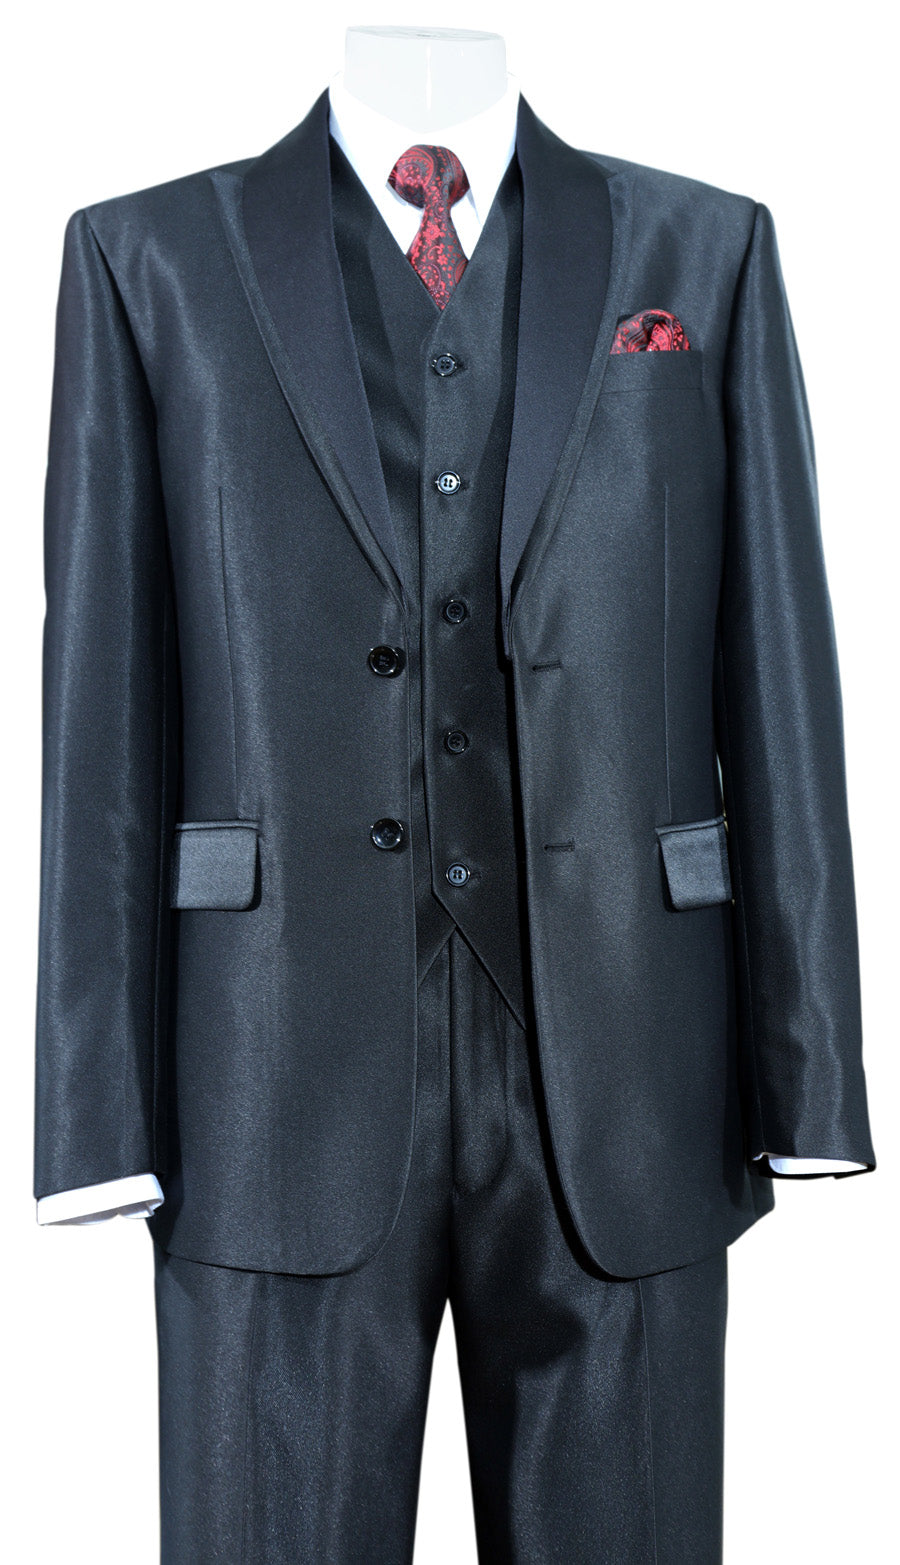 Fortino Landi Suit 5702V5-Black - Church Suits For Less